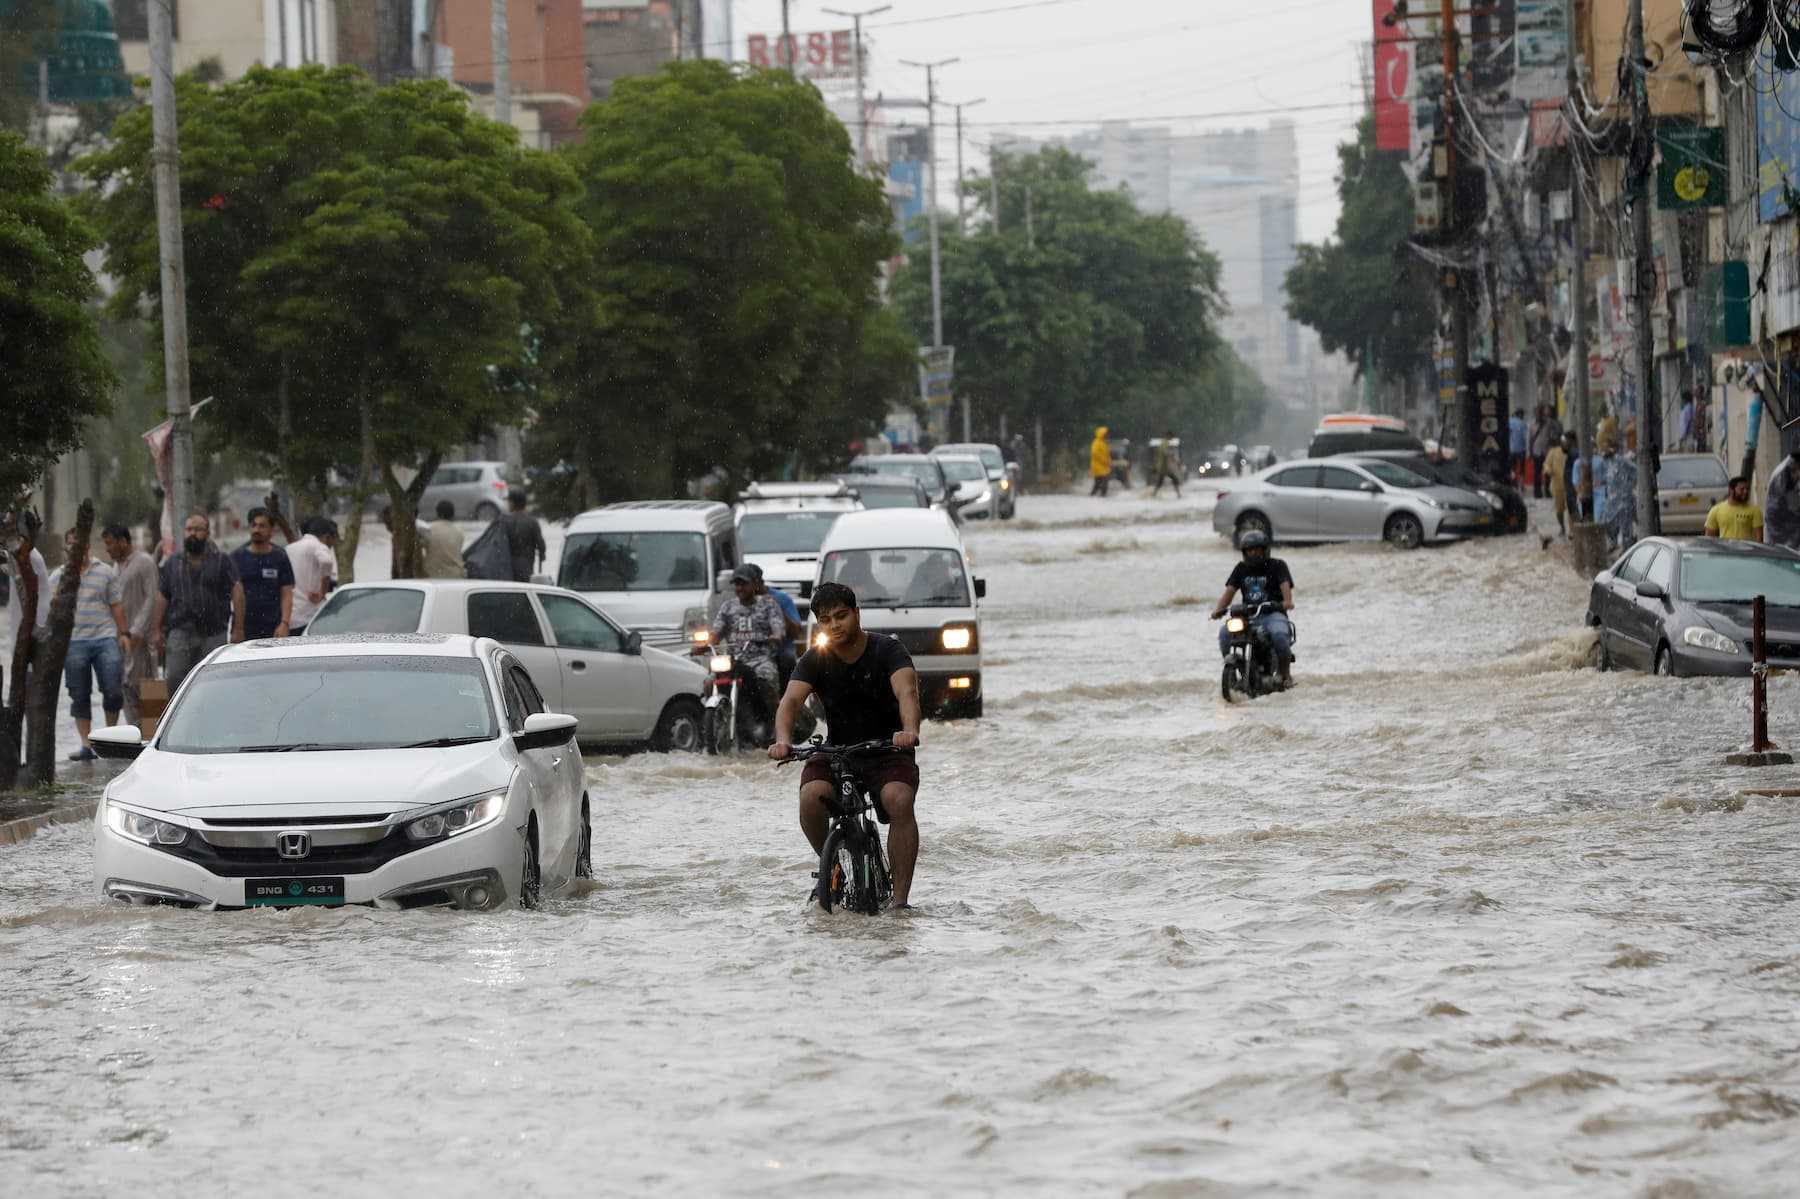 Commuters drive in a flooded street during the monsoon rain on Tuesday. — Reuters